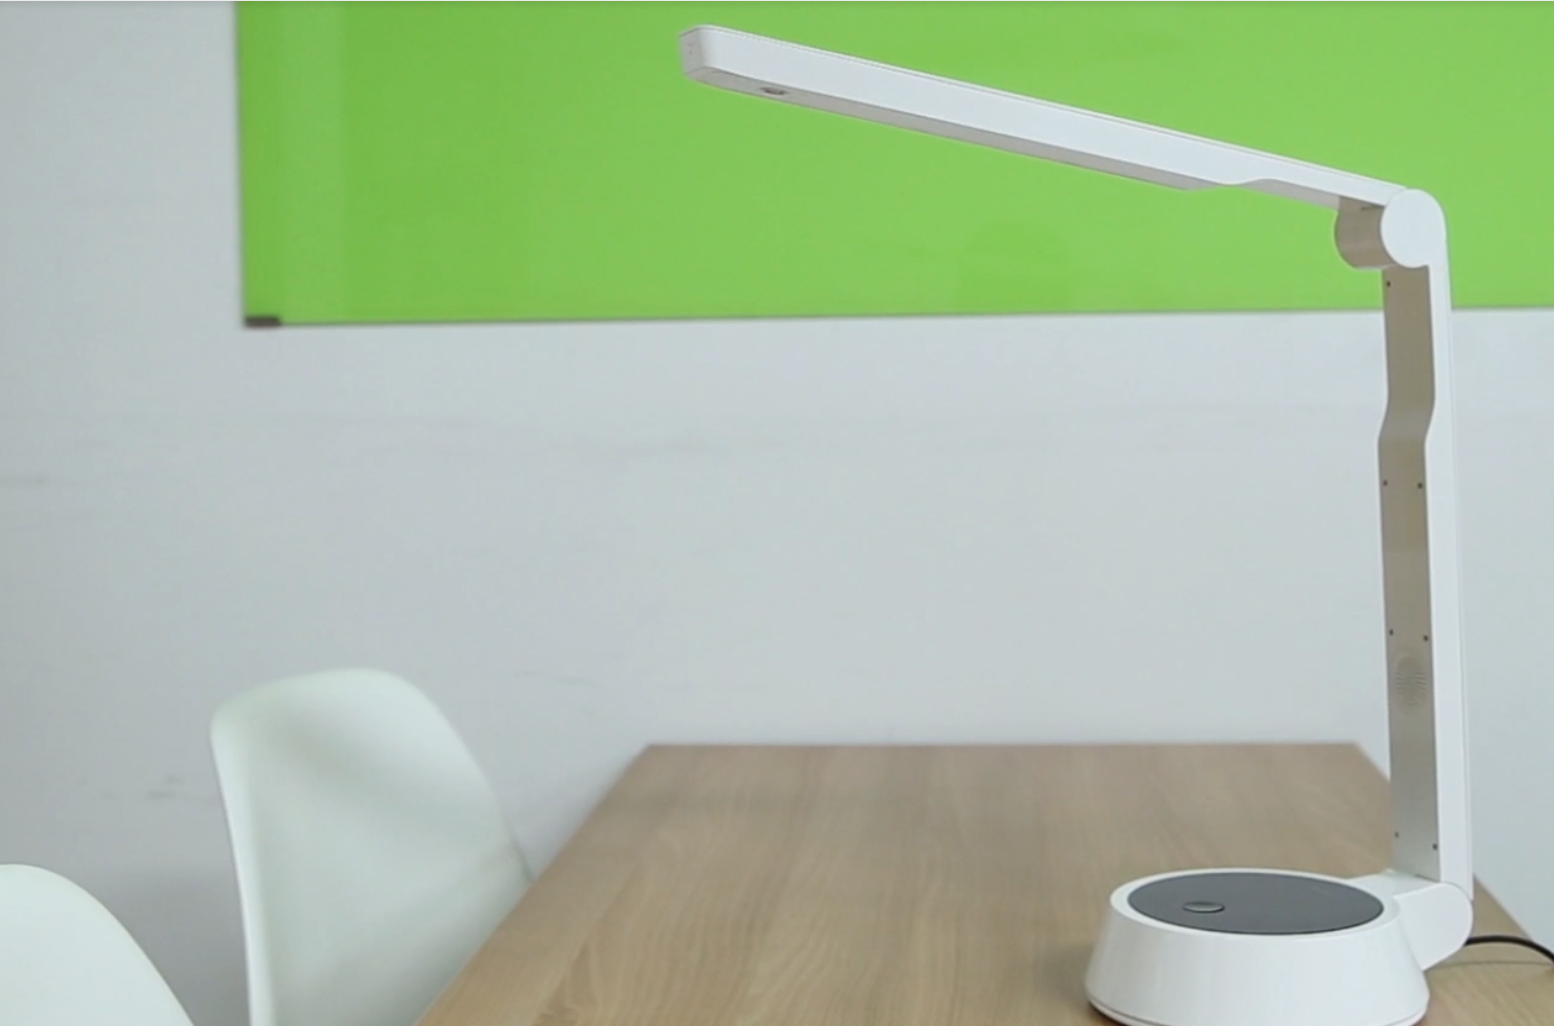 LumiSmart - Smart Desk Lamp connected to your life through Internet ...